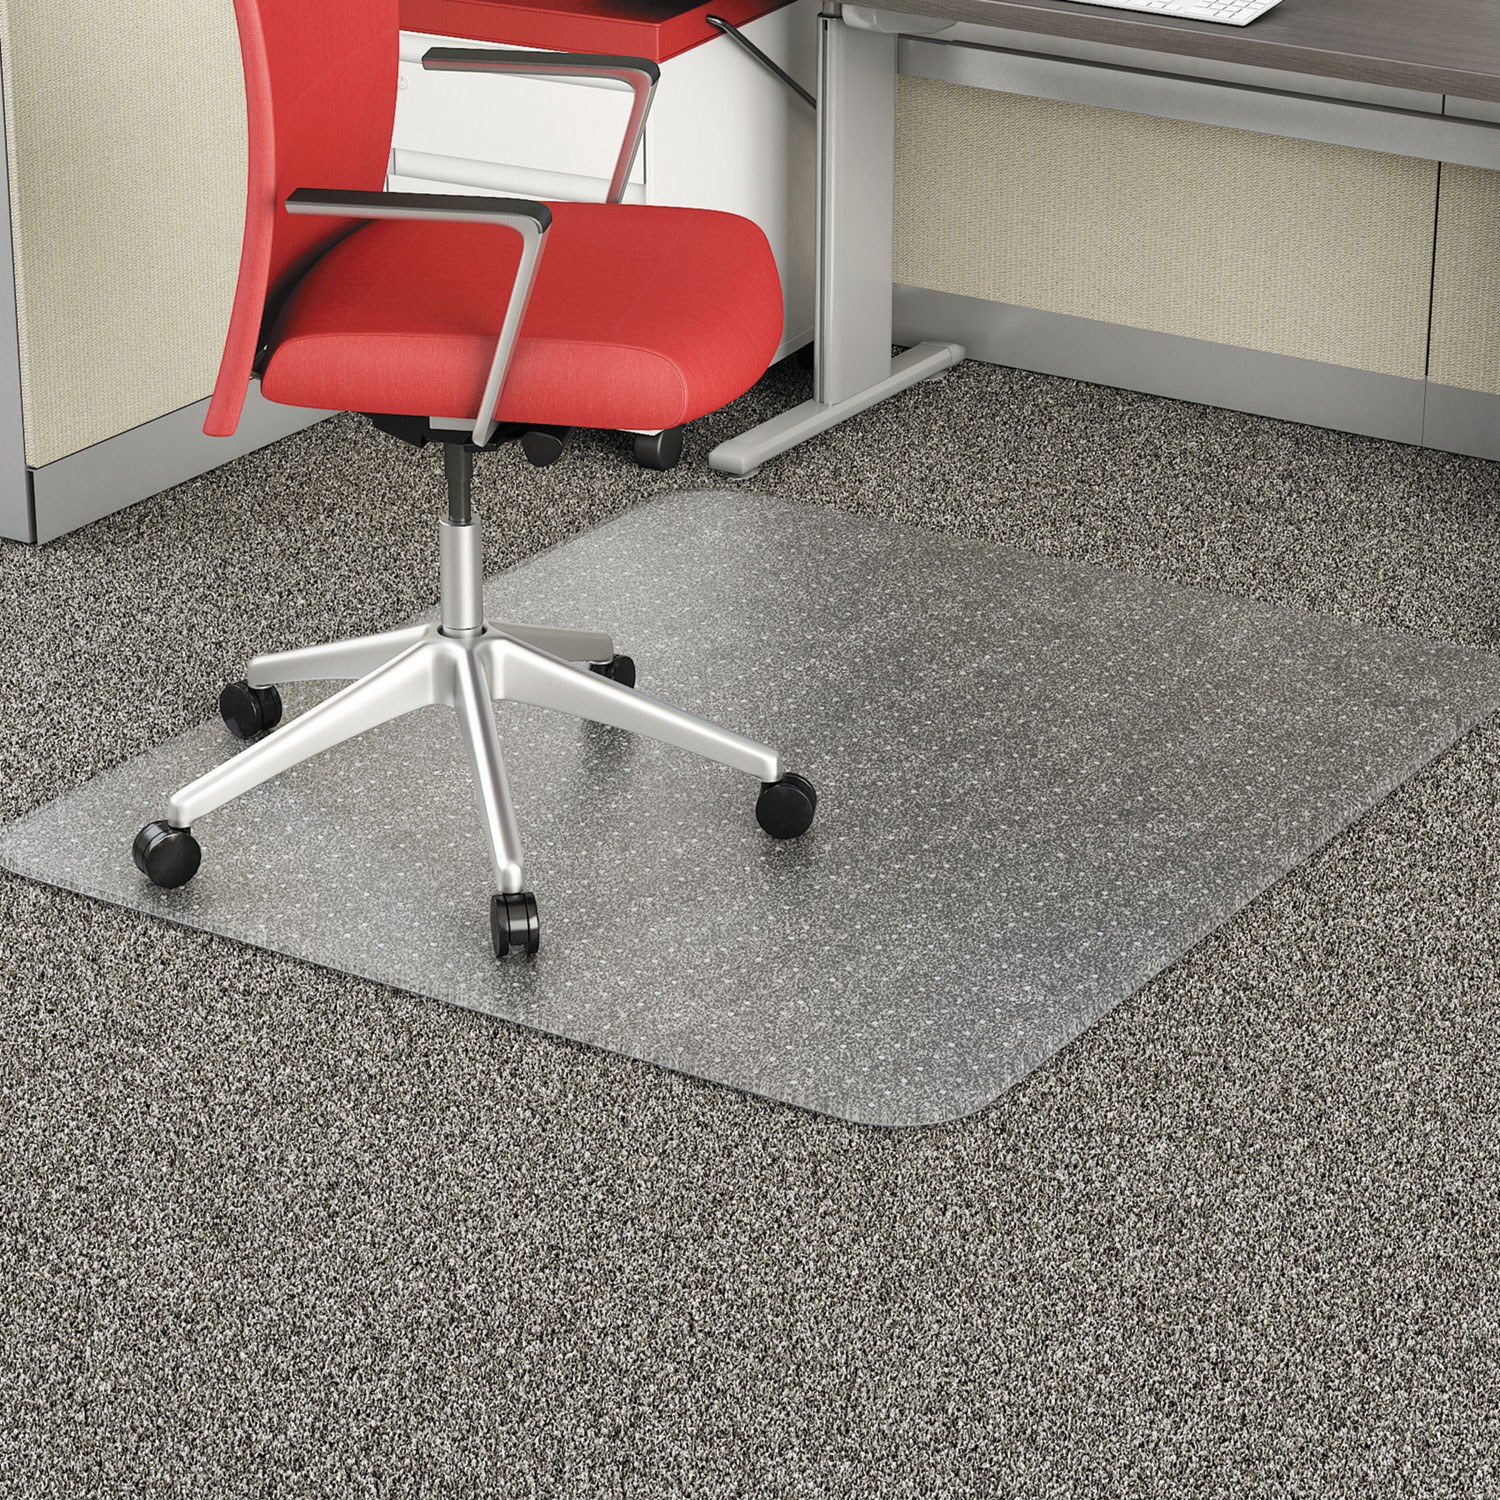 desk com chairs mats office dp computer mat products floor amazon chair for carpet x